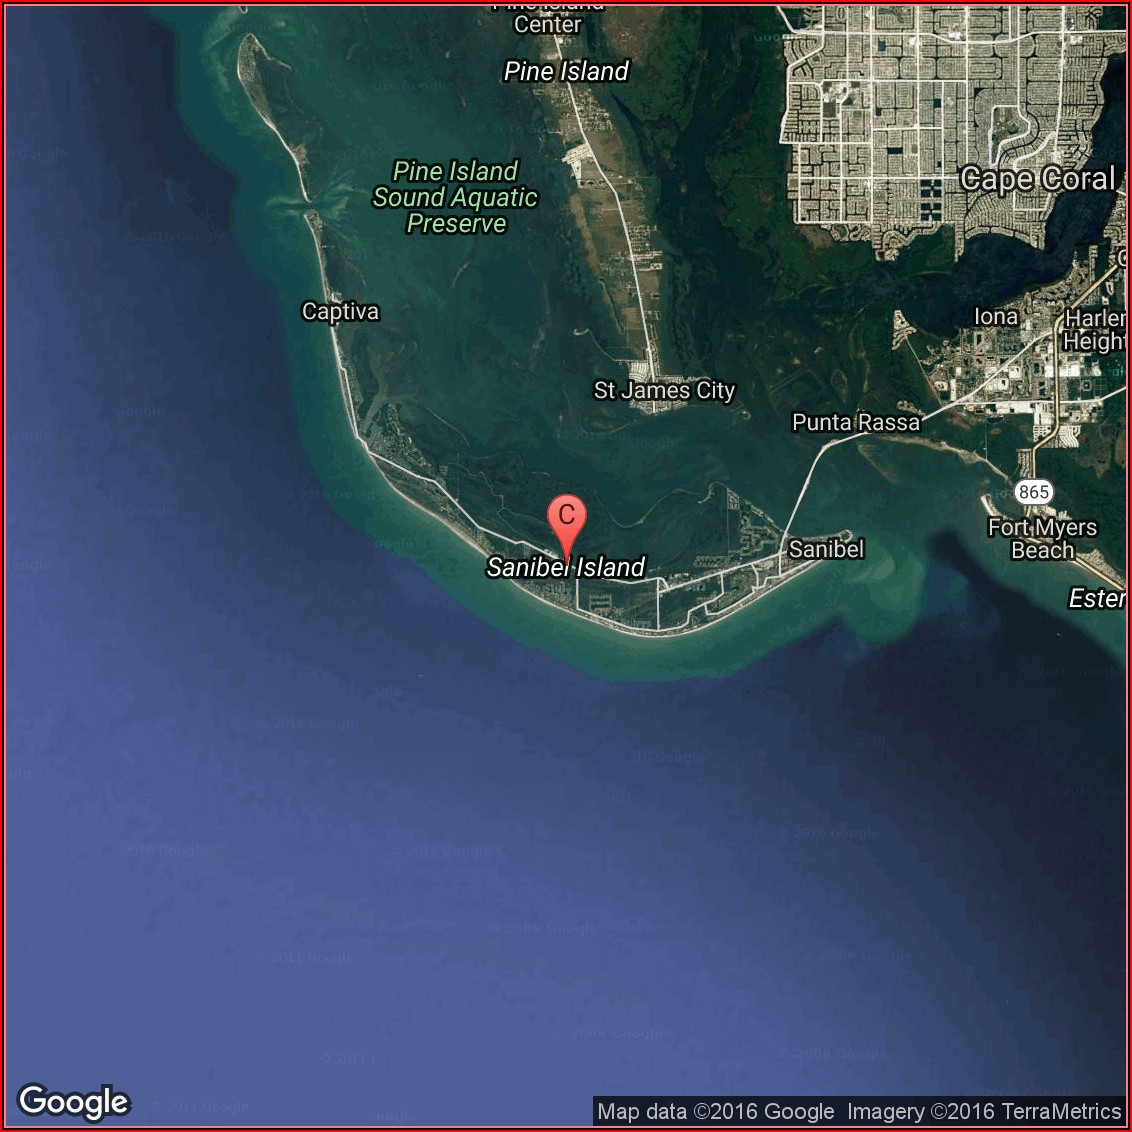 Sanibel Island Google Maps